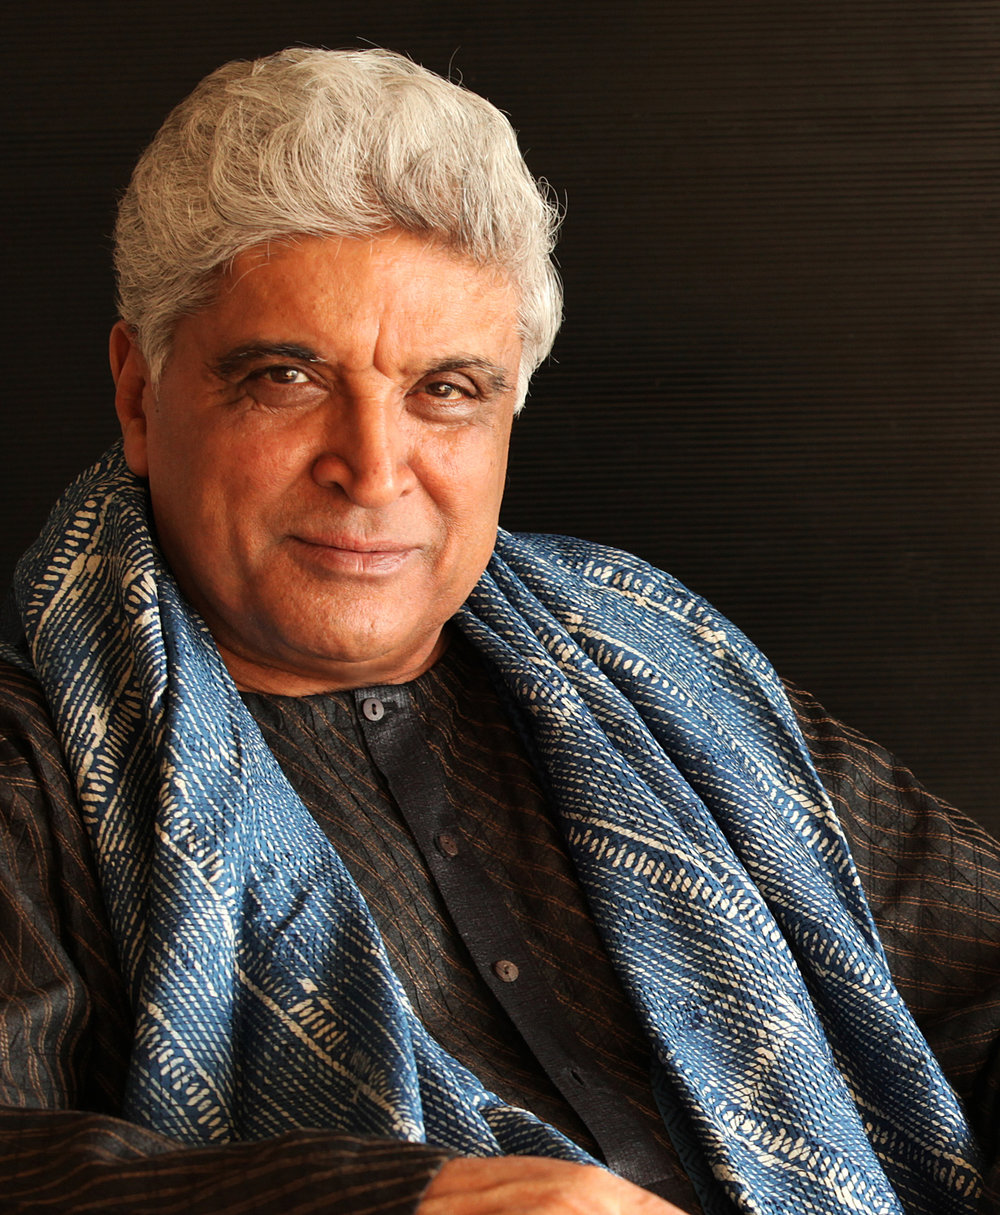 Popular Culture and Public Engagement in India - Javed Akhtar x Sangeeta Datta@ SOAS South Asia InstituteKhalili Lecture Theatre (KLT)16 July 2018 | 6 PMJoin us for a discussion with Javed Akhtar, Indian poet, screenplay writer and lyricist, about popular cinema, his own film songs, his Urdu poetry lineage, tradition and creativity and the dynamic changes in the Bombay film industry.Dr. Sangeeta Datta is an independent filmmaker, musician and cultural commentator. She is the founder-director of Baithak UK.The event is free but registration is required.